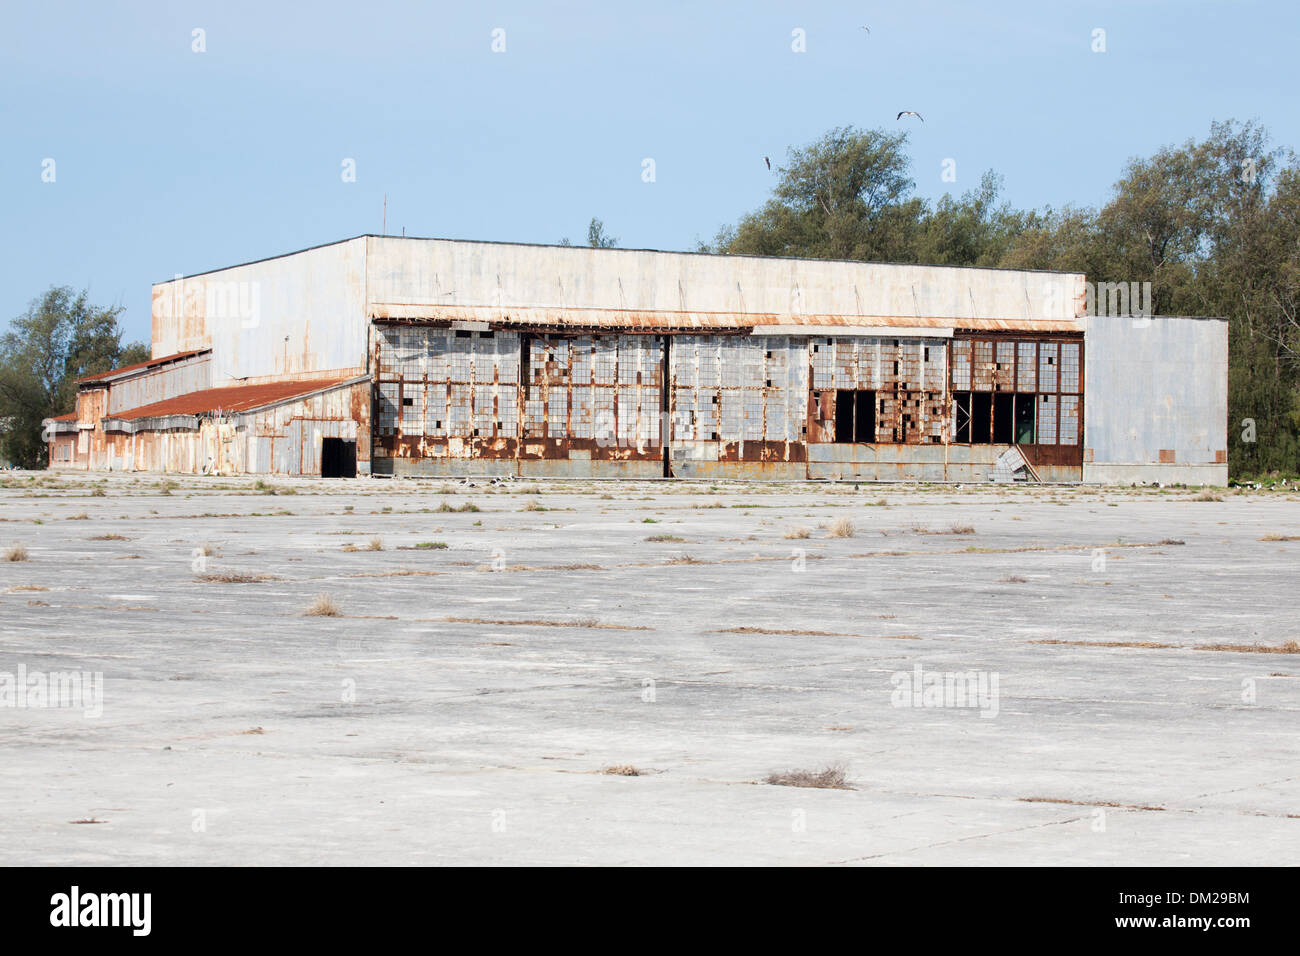 Midway seaplane hangar shelled in WWII on Dec 7, 1941 and set on fire by Japanese air attack Jun 4, 1942. Stock Photo